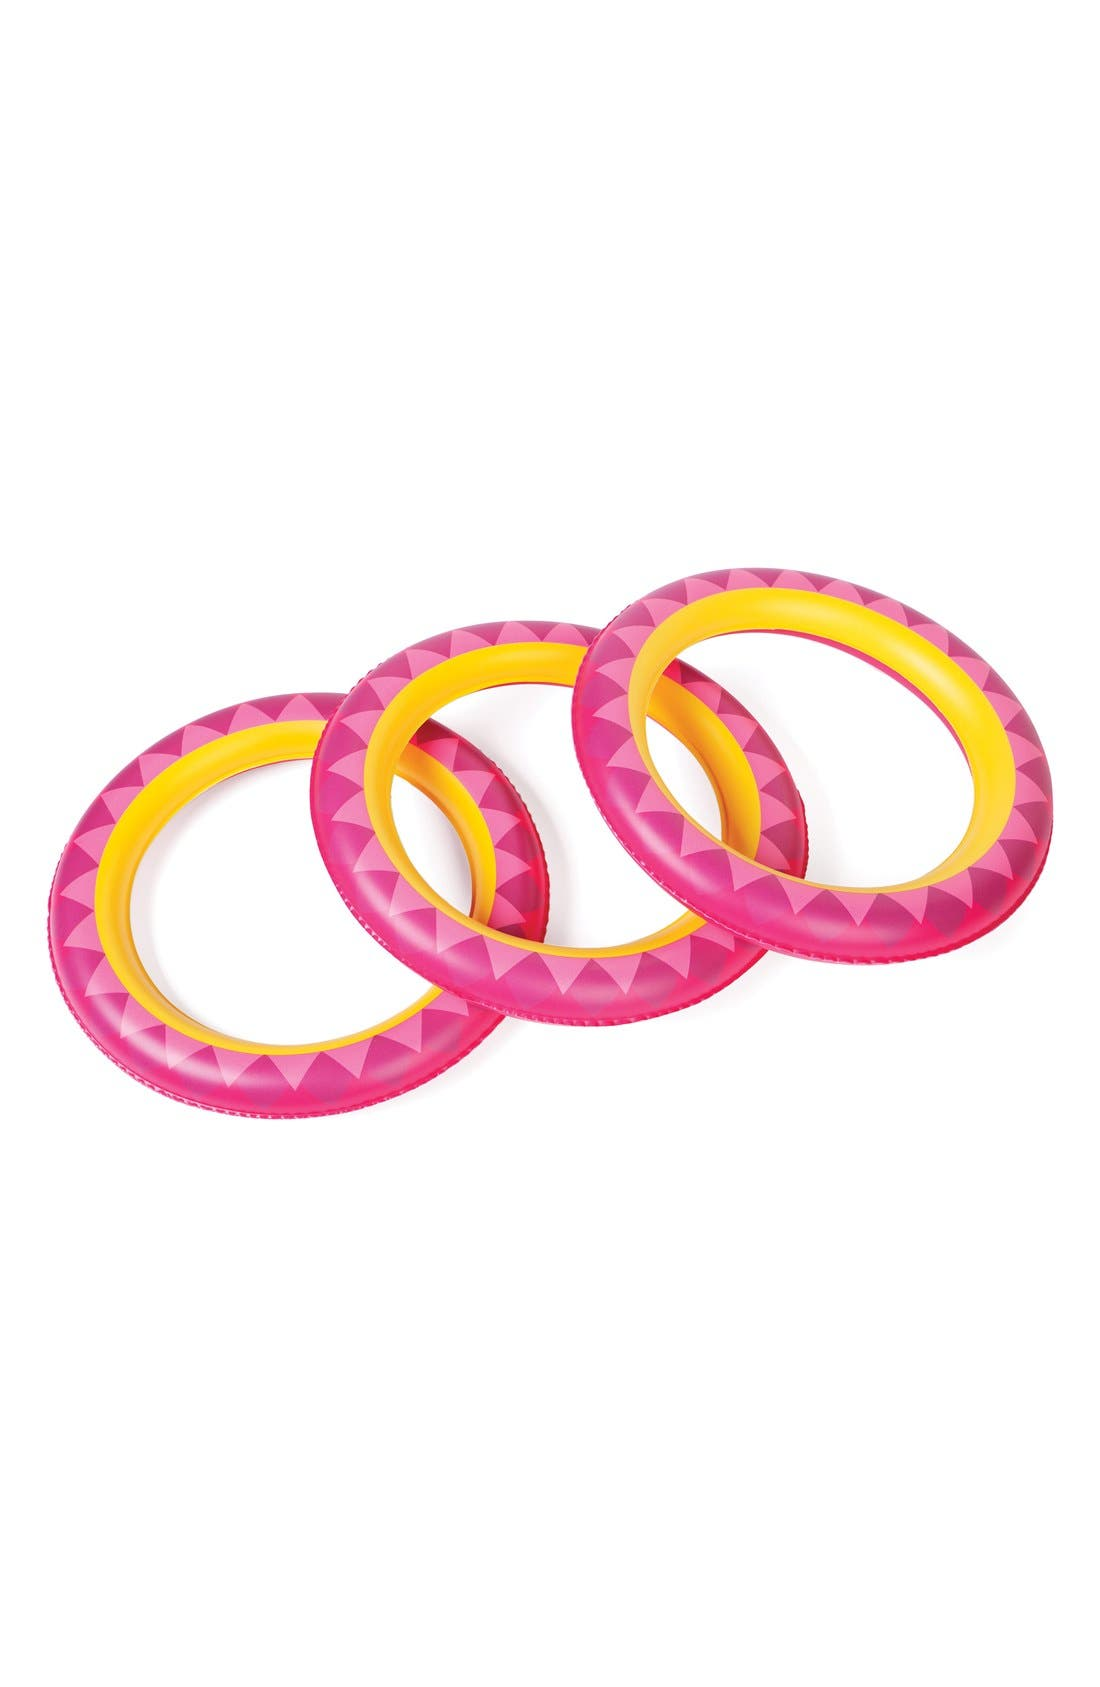 Alternate Image 3  - Sunnylife 'Cactoss' Inflatable Ring Toss Game